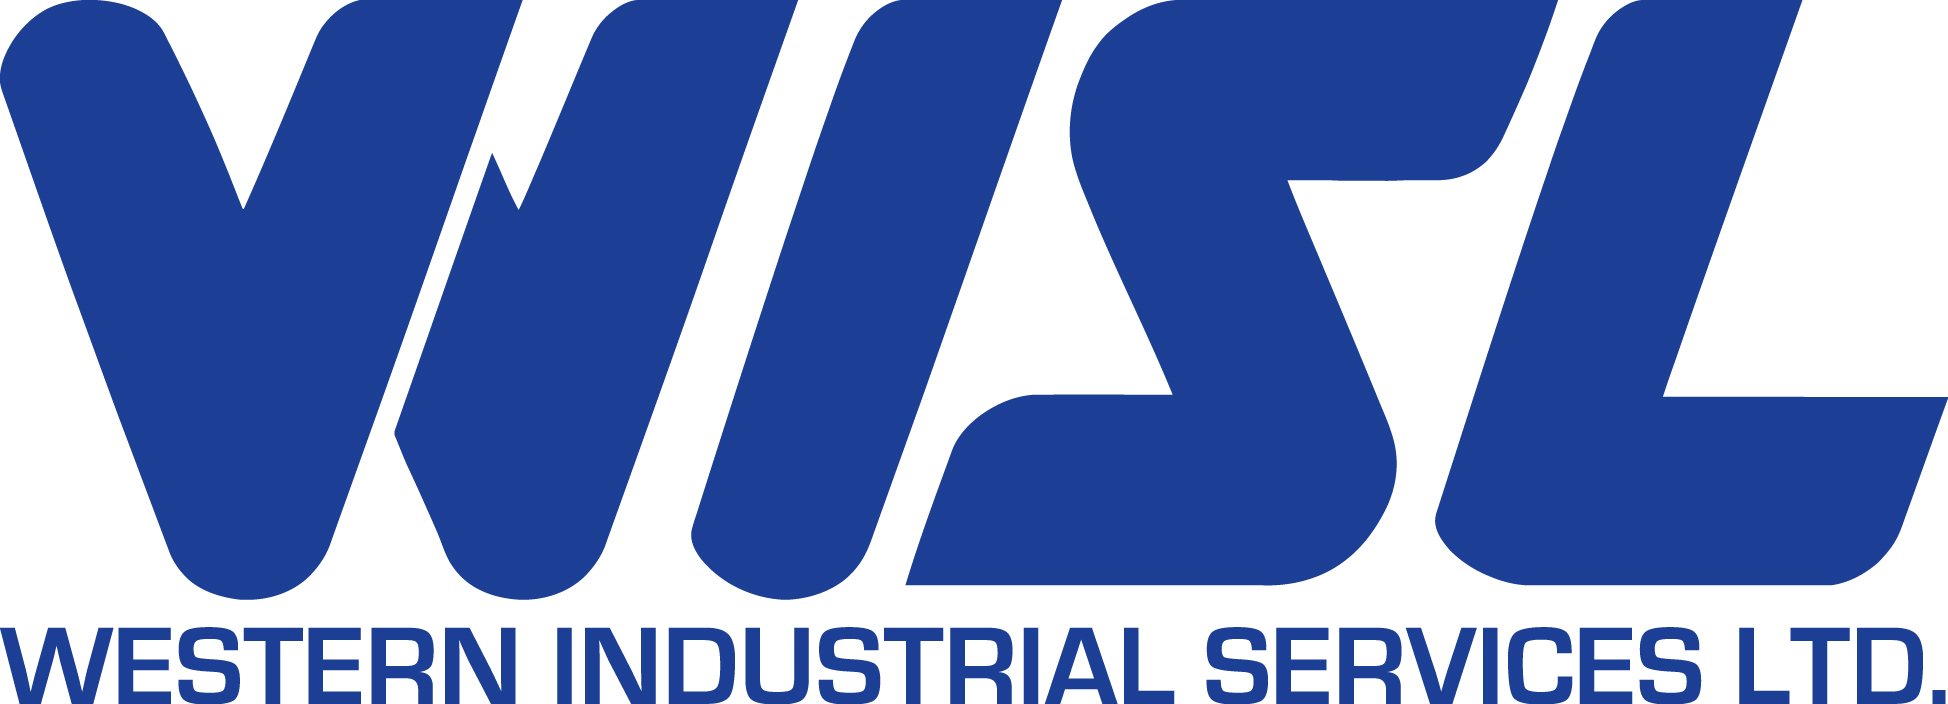 Western Industrial Services Ltd.